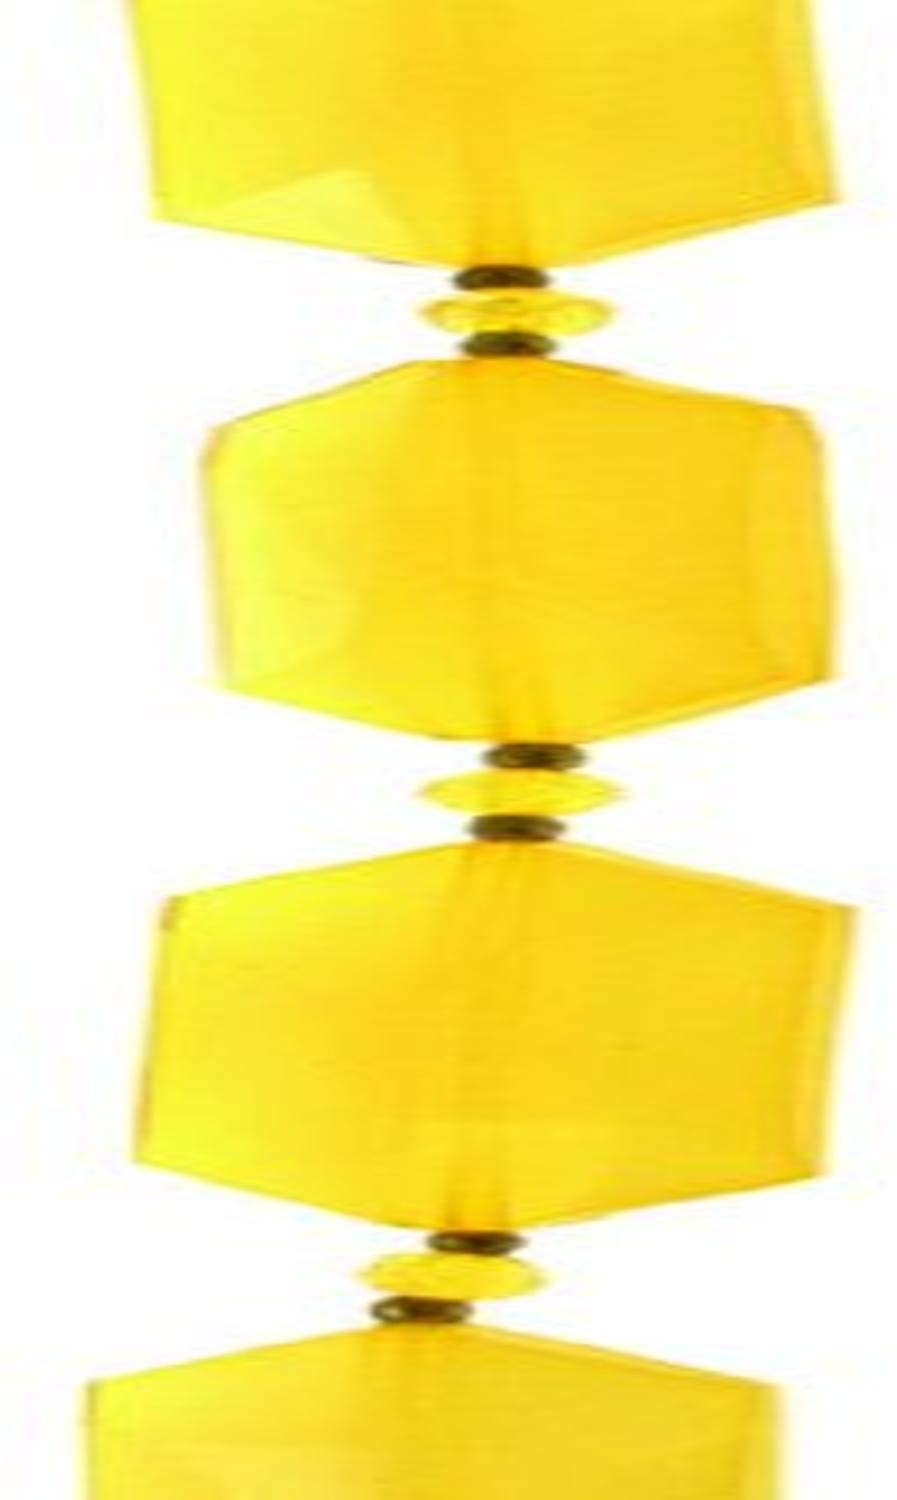 Sulyn 7in Bead Strand Large Angular, Soft Yellow for Craft and Jewelry-Making